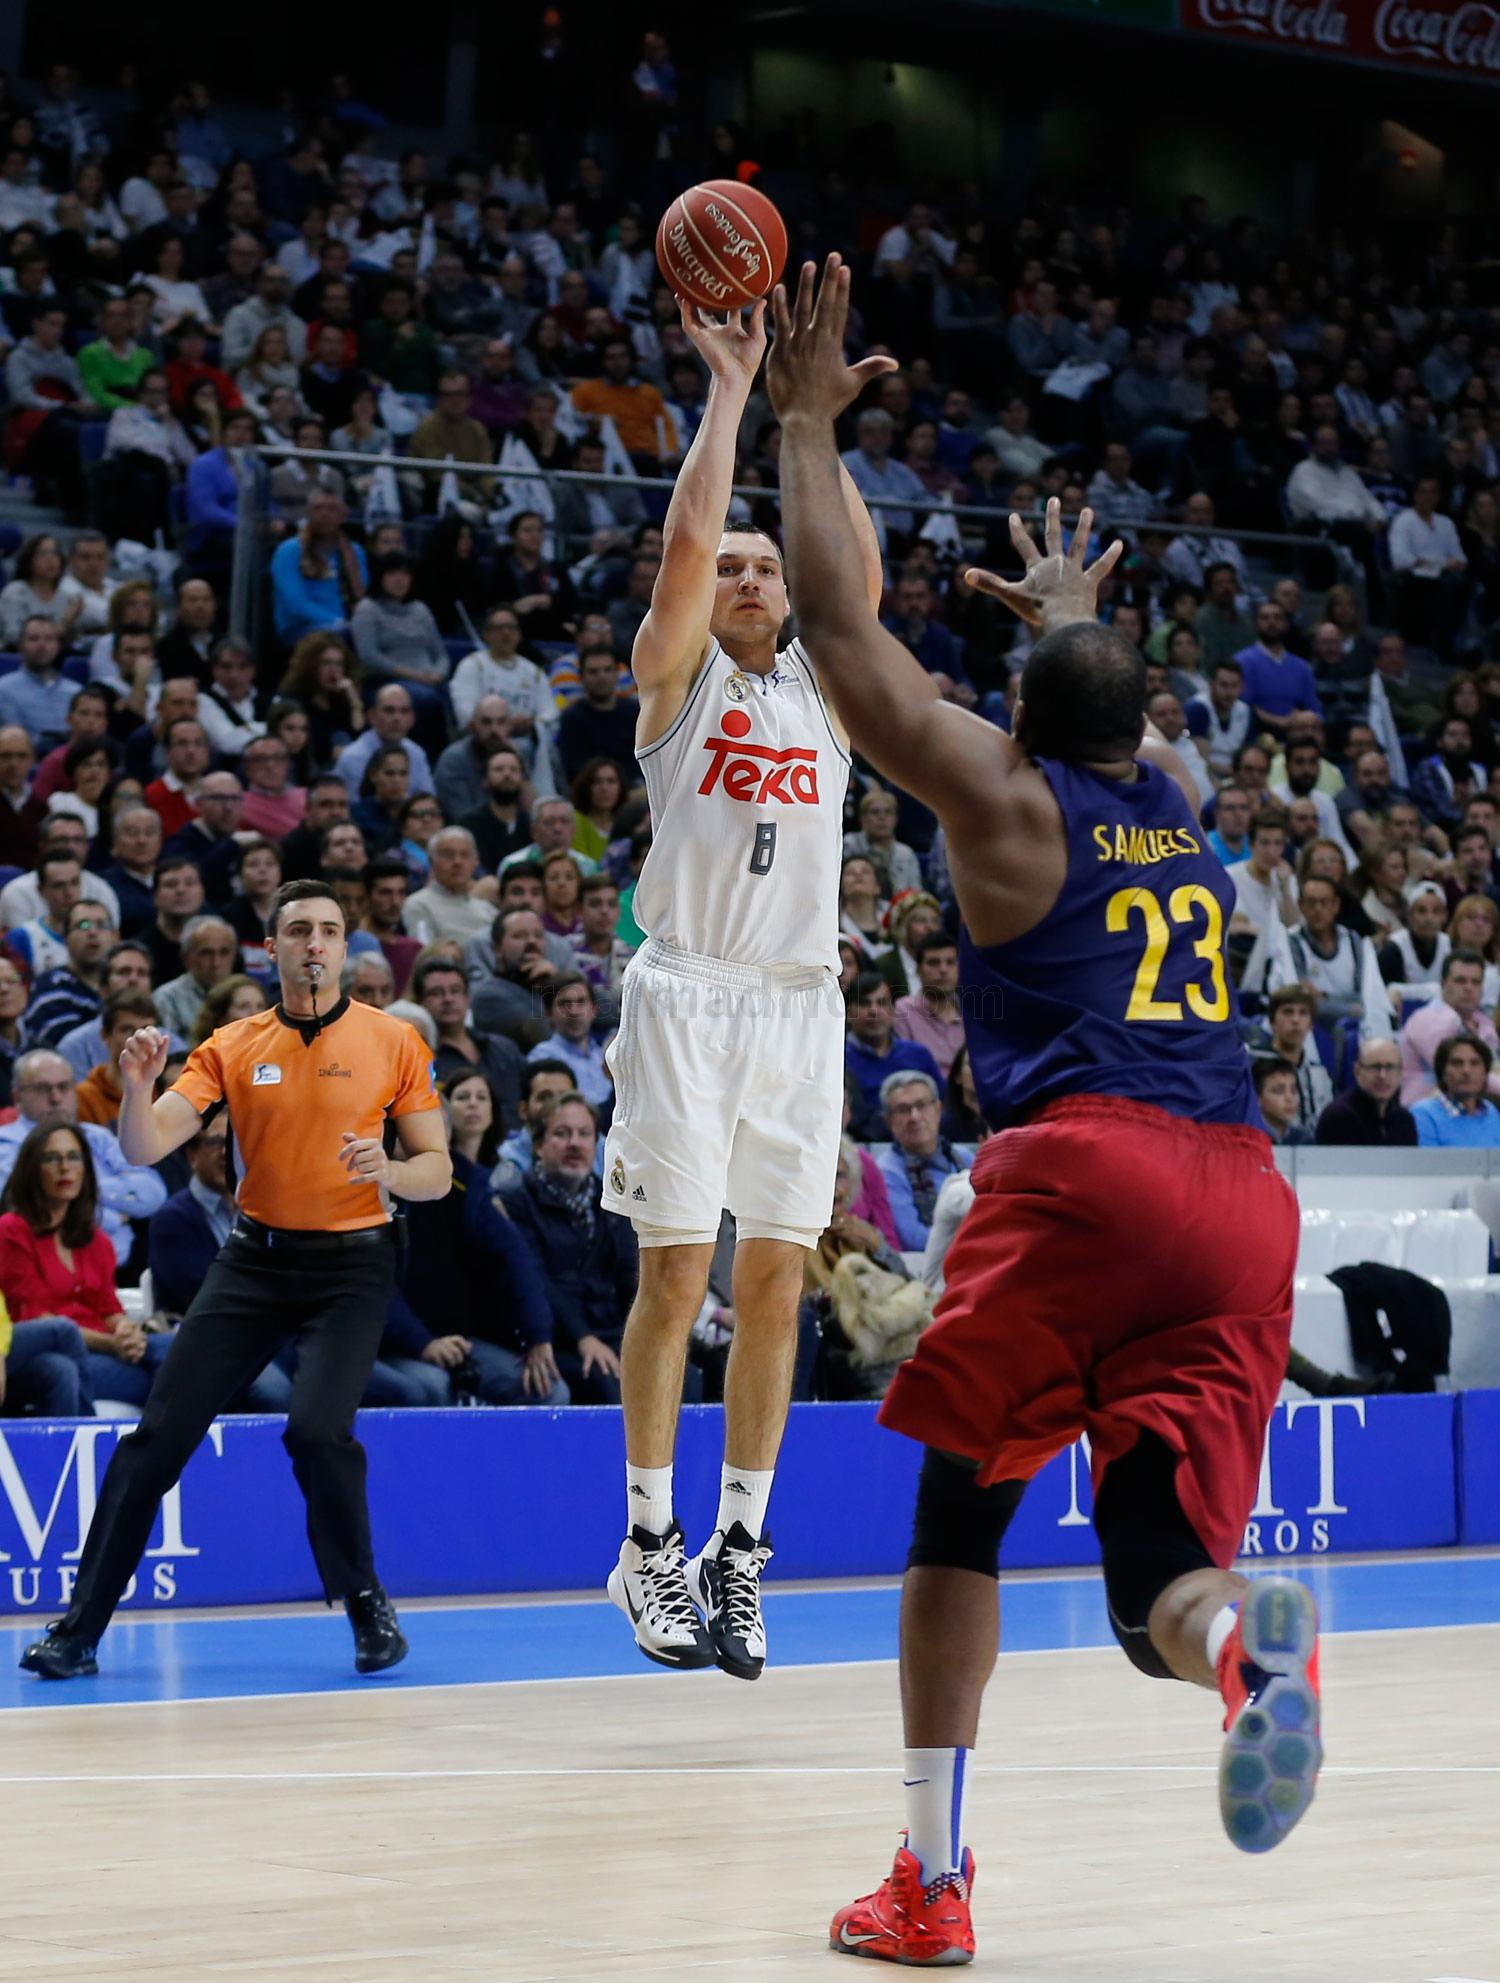 Real Madrid - Real Madrid - Barcelona Lassa - 27-12-2015